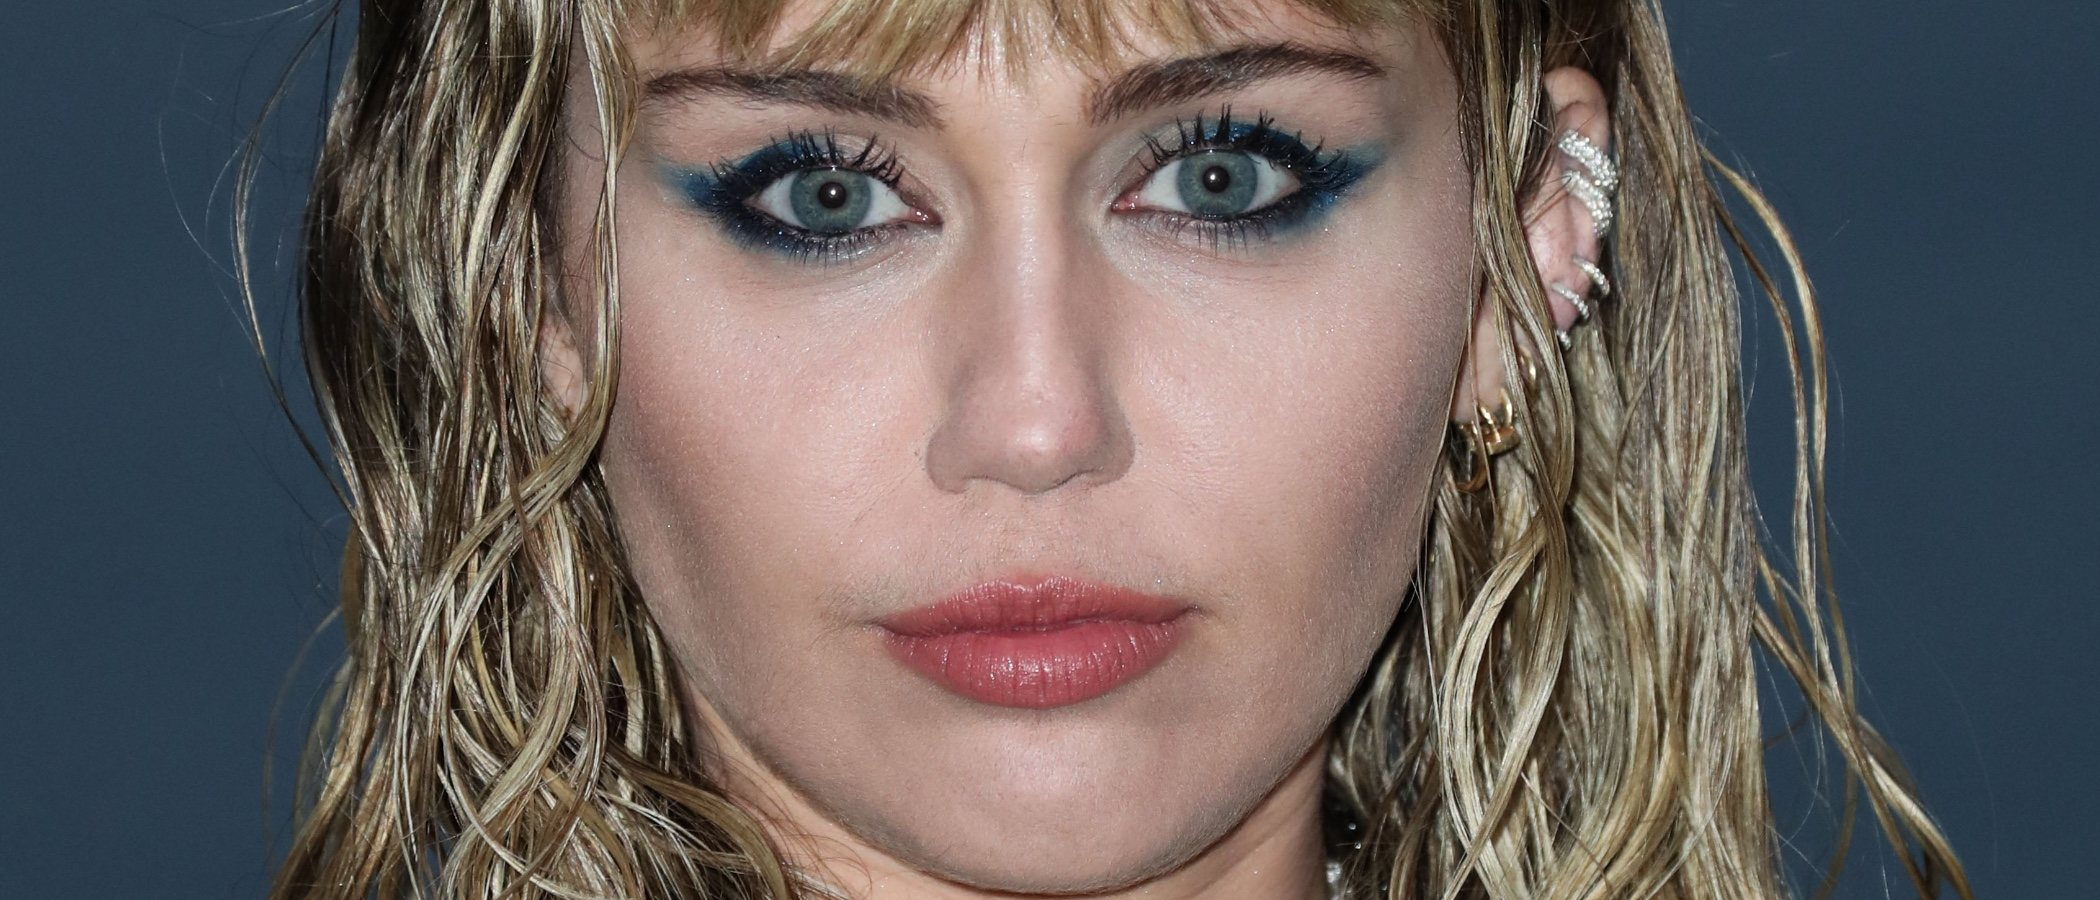 Miley Cyrus con su cat-eye azul se corona en el top five de peores beauty looks de la semana